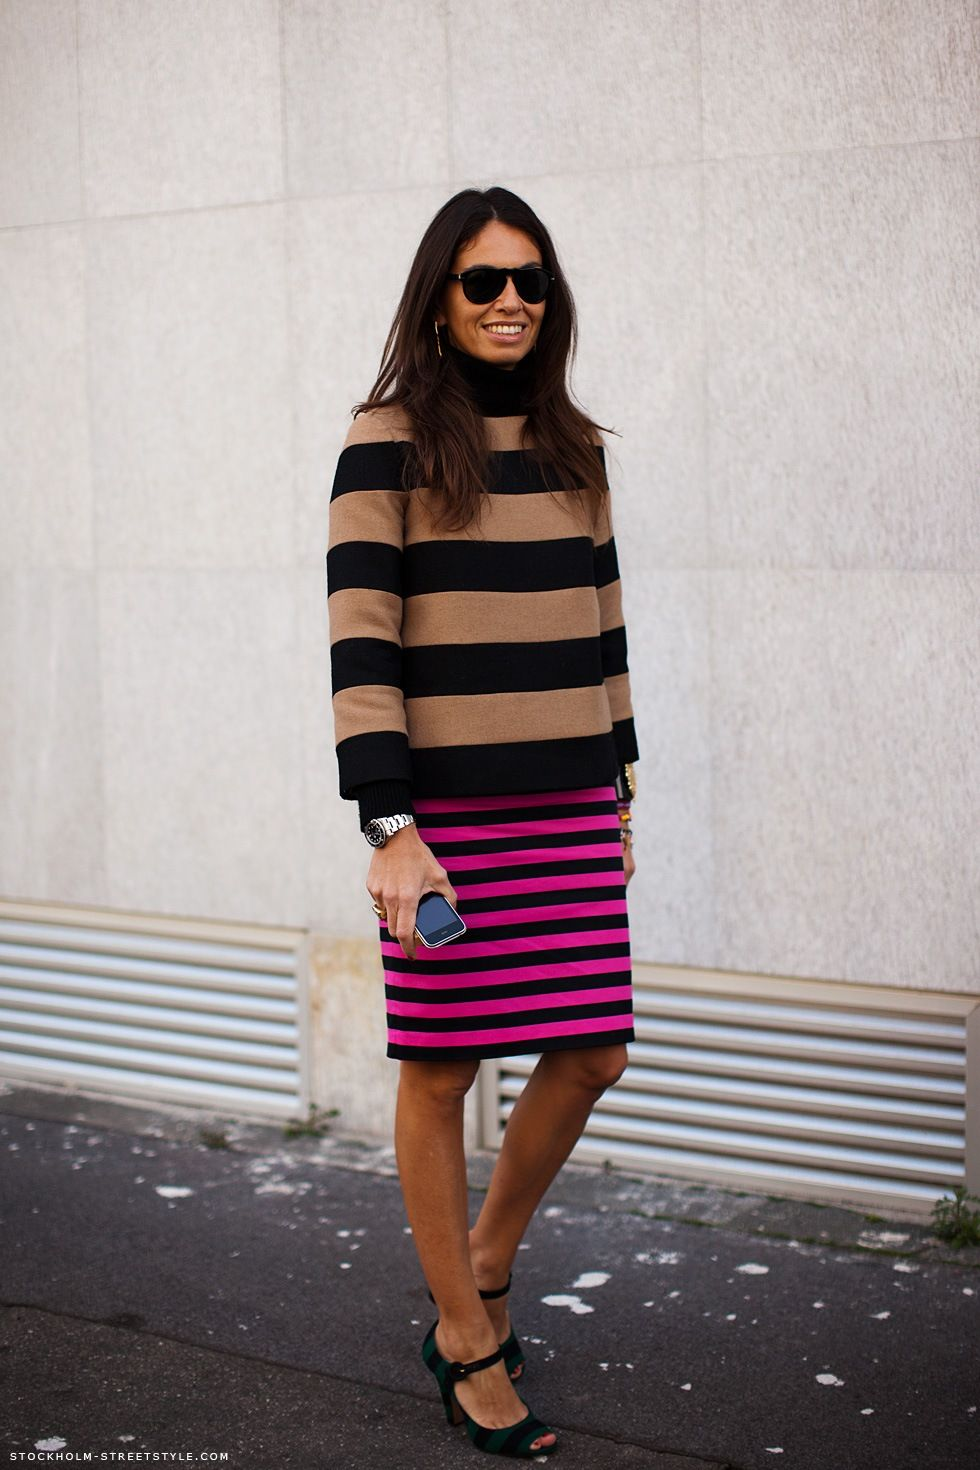 big stripes + little stripes + sidewalk stripes. cool.